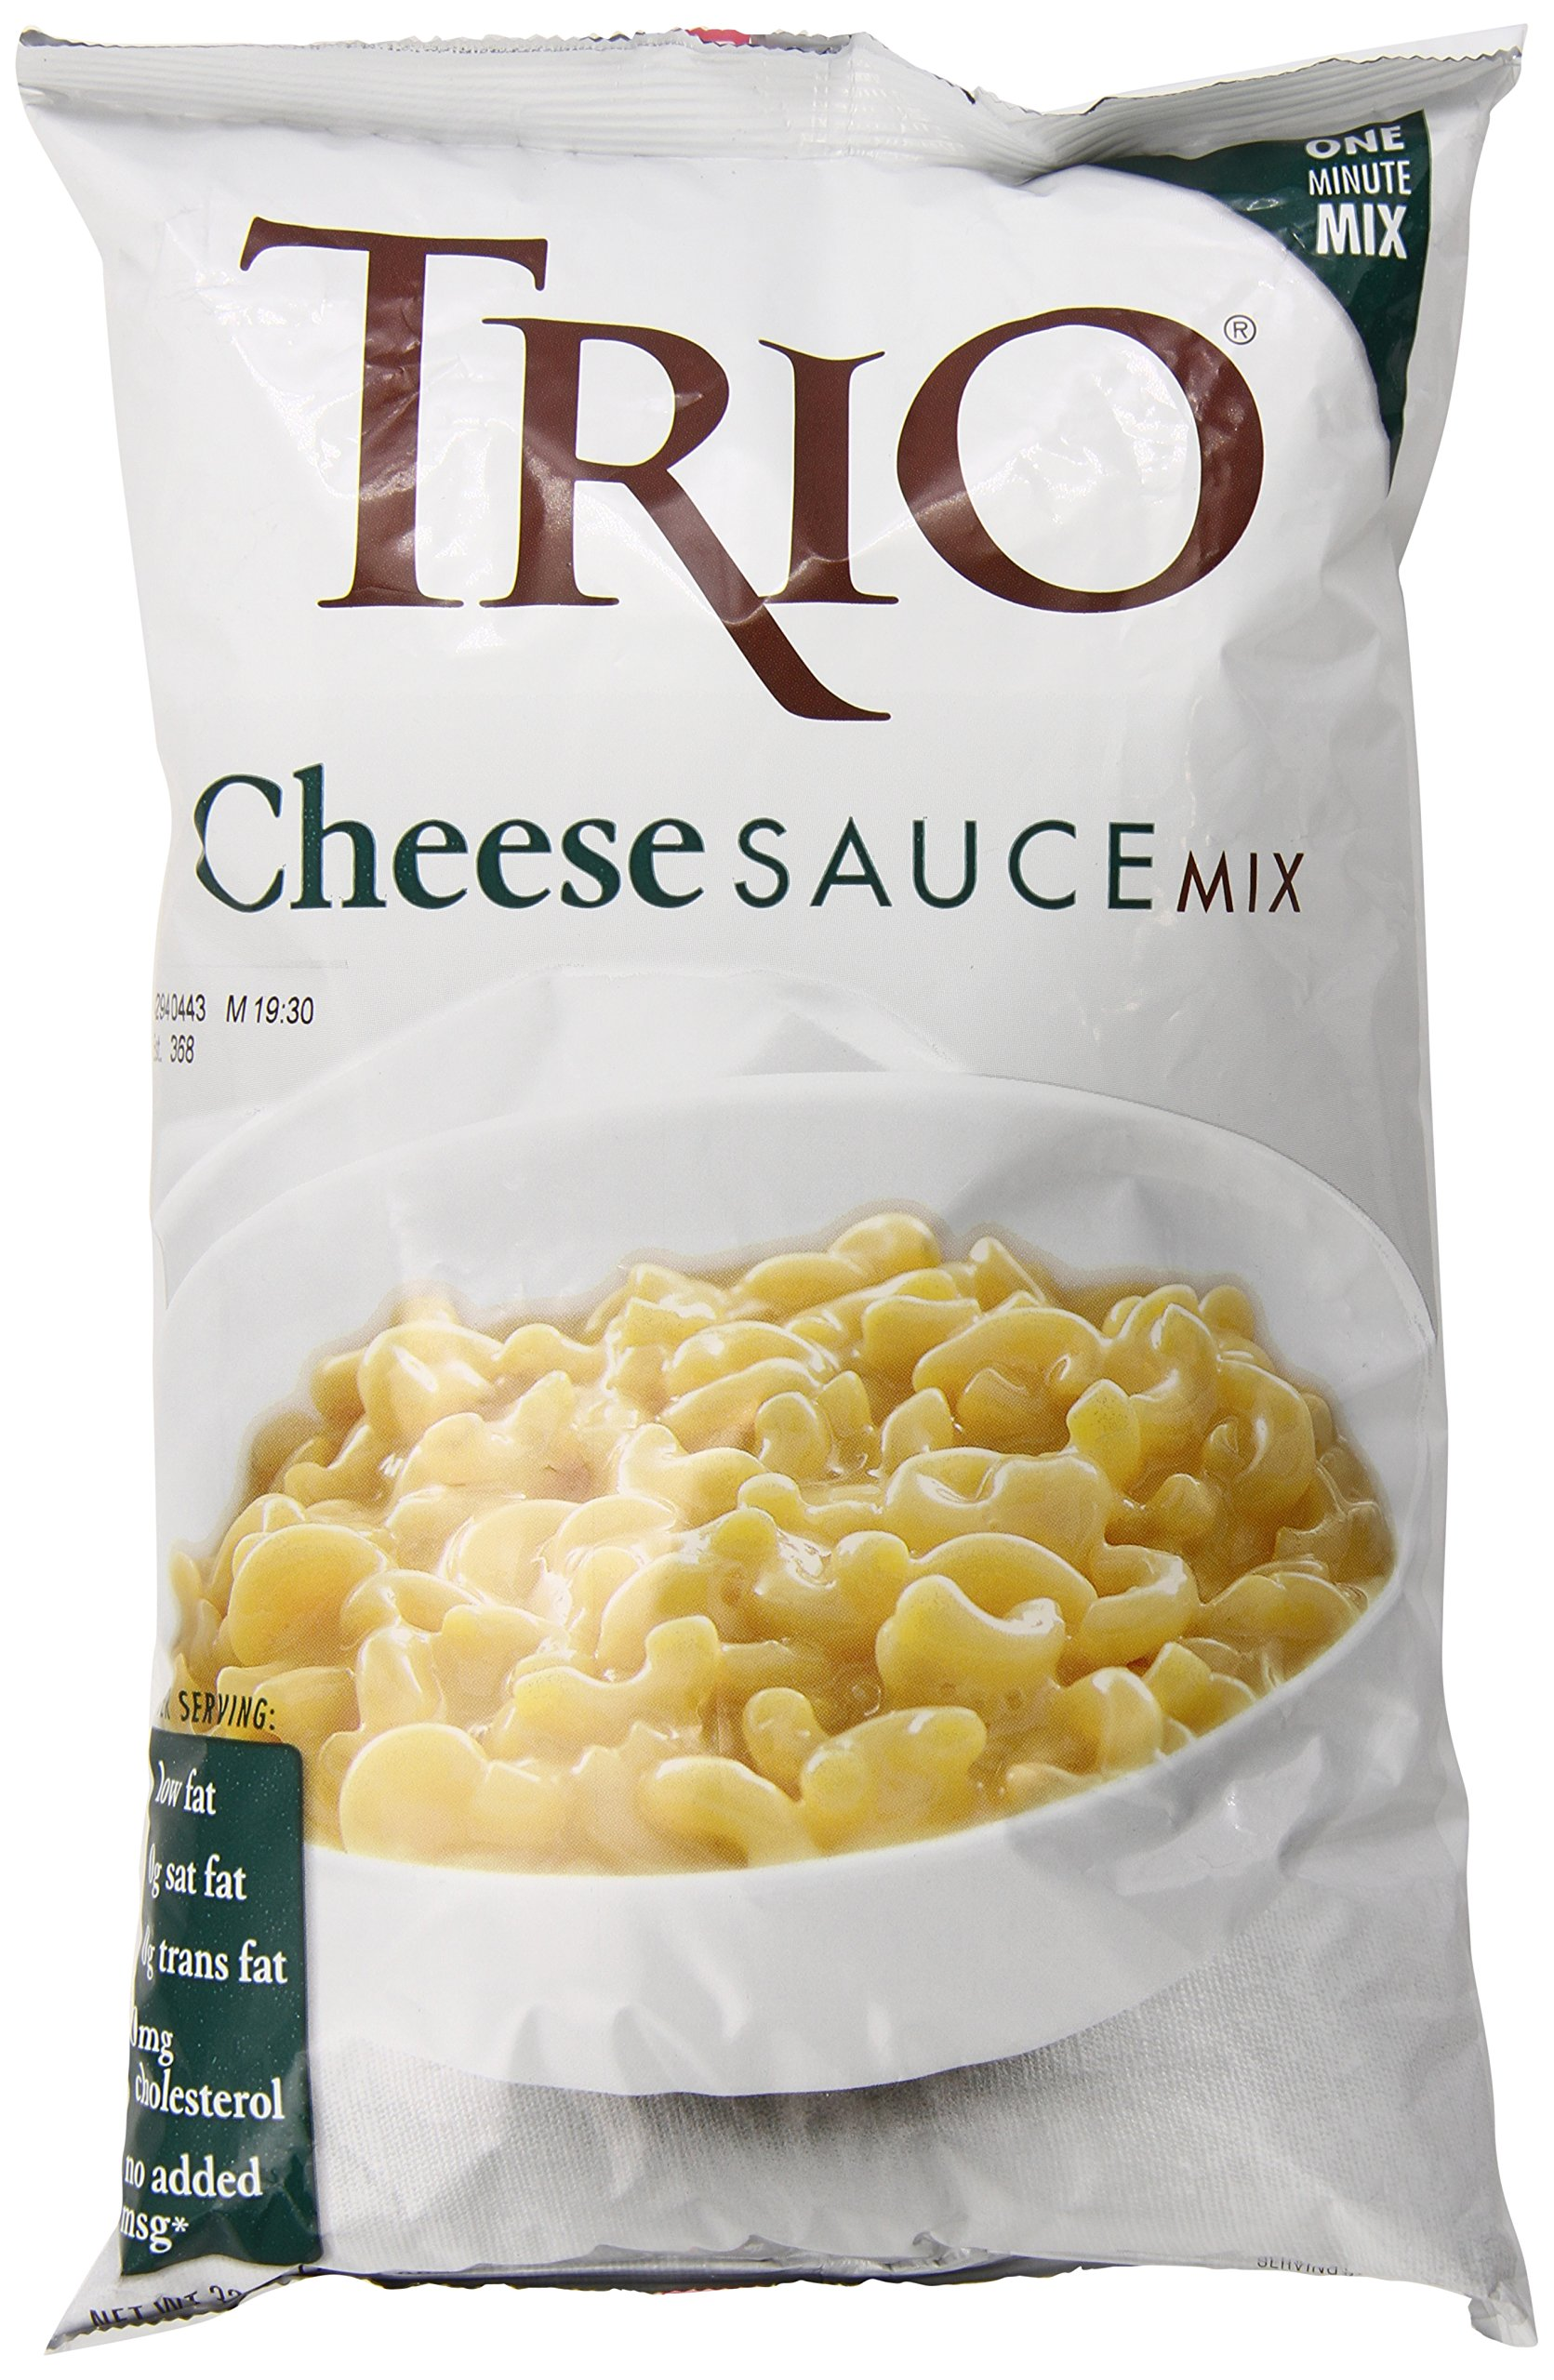 Trio Cheese Sauce Mix, 32-Ounce Units (Pack of 4) by Trio (Image #1)